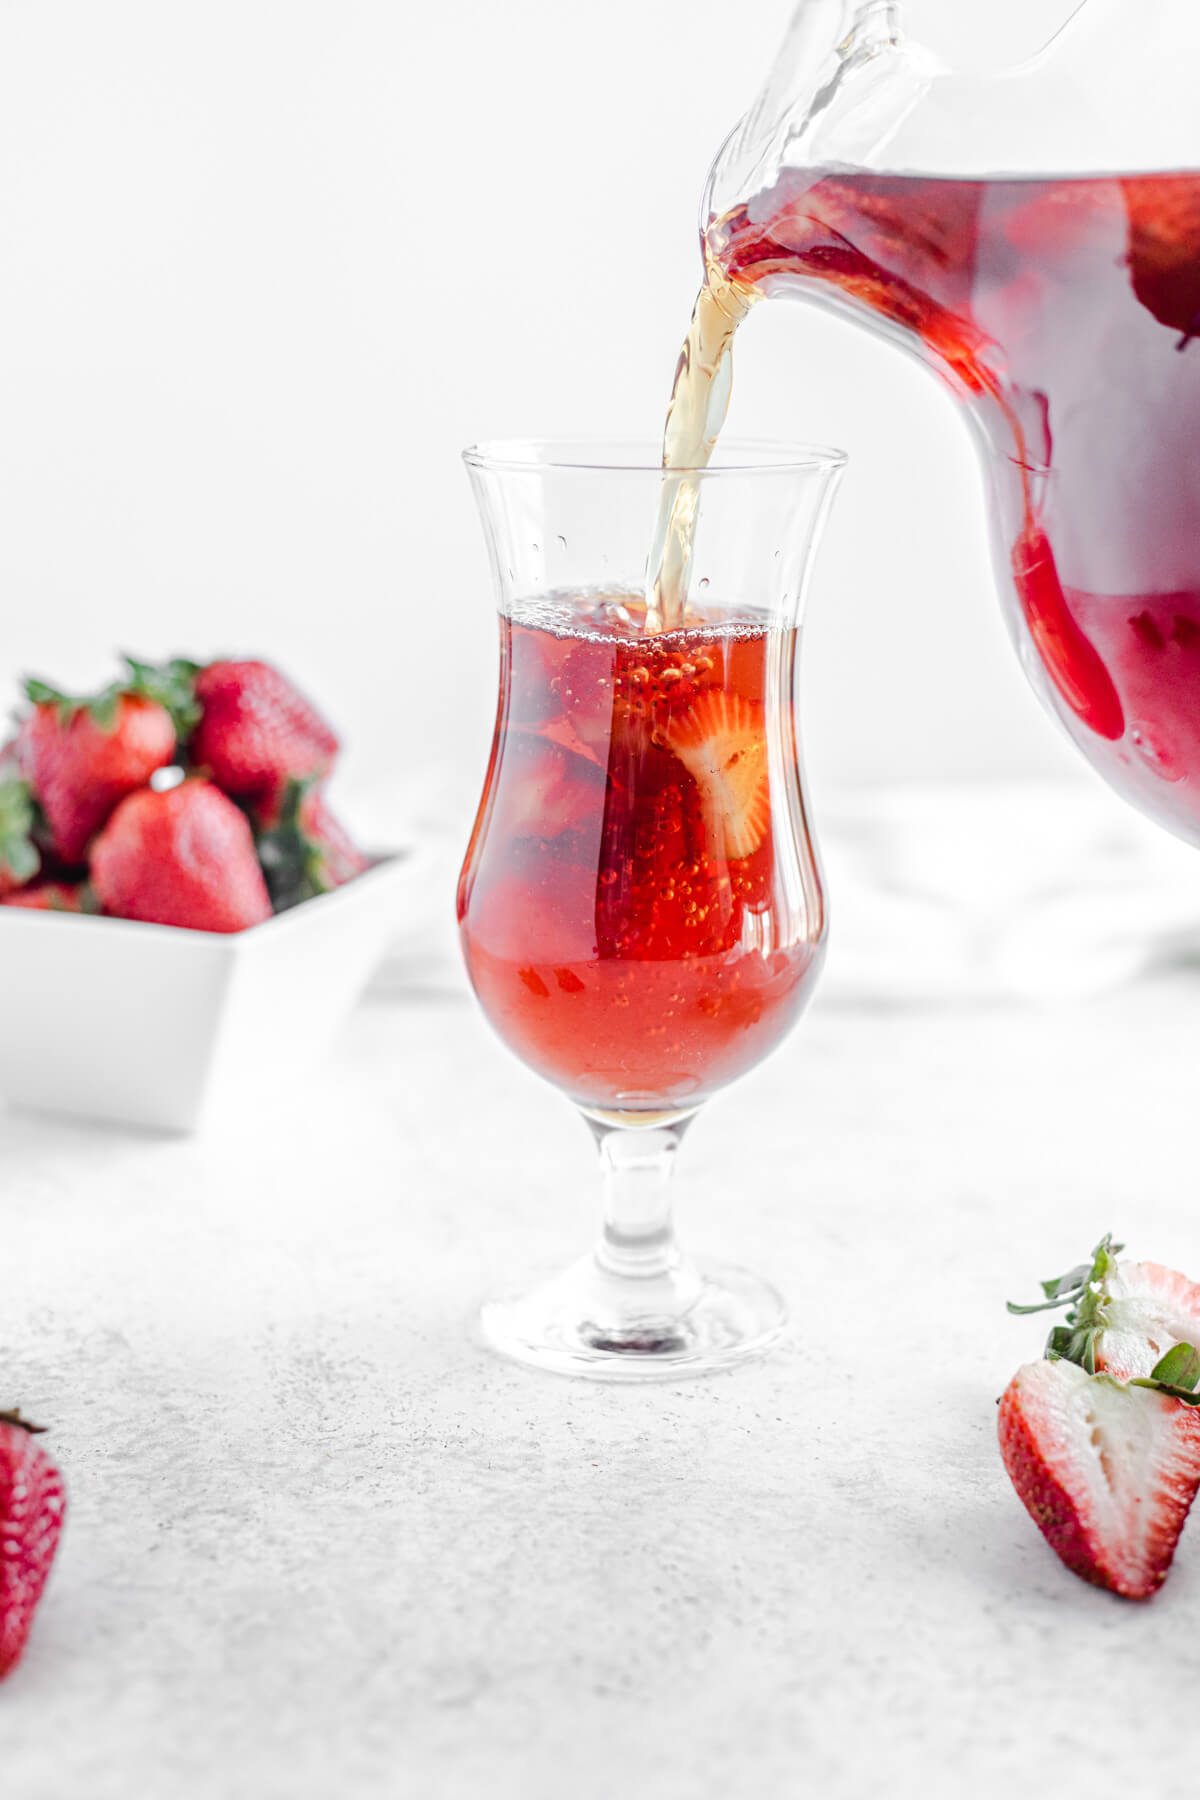 pouring strawberry flavoured iced tea into a glass filled with fresh sliced strawberries